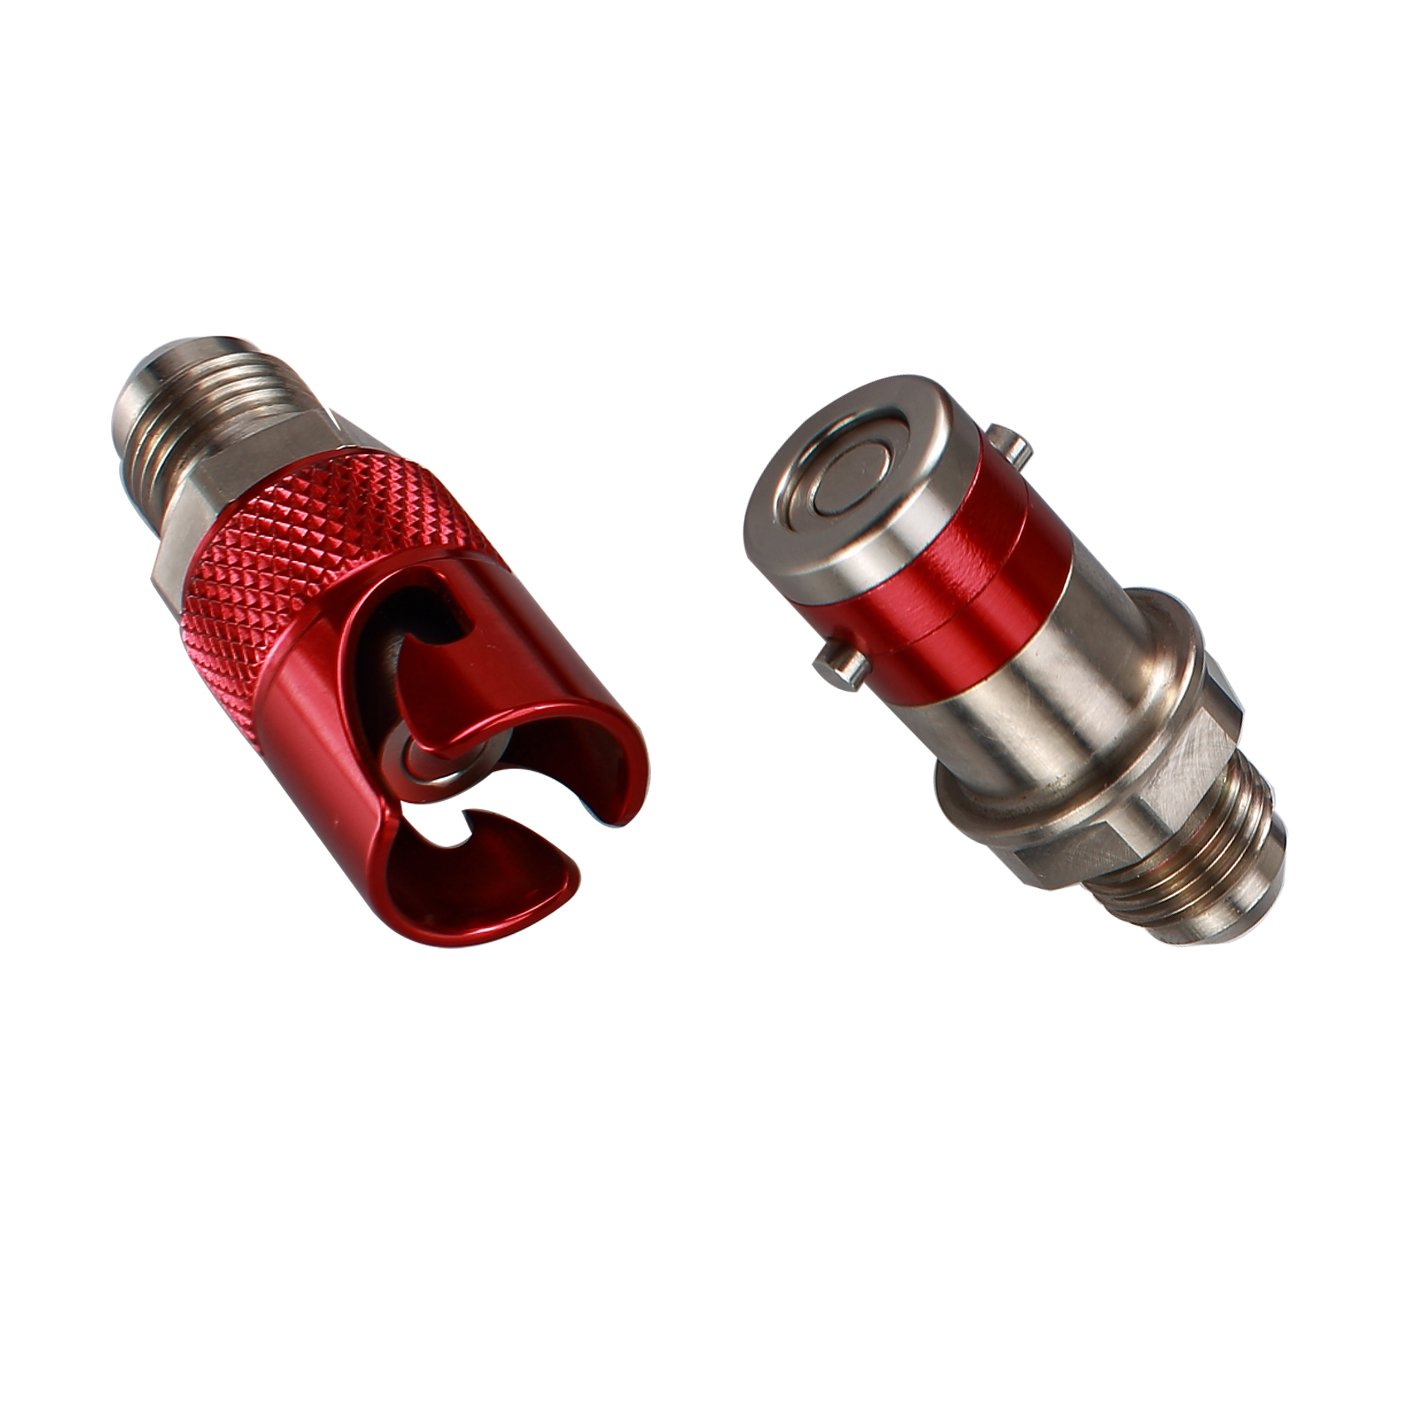 Generic AN-3 (-3 AN JIC 3/8''X24) Titanium Quick Release Disconnect Dry Brake Coupling (Red)